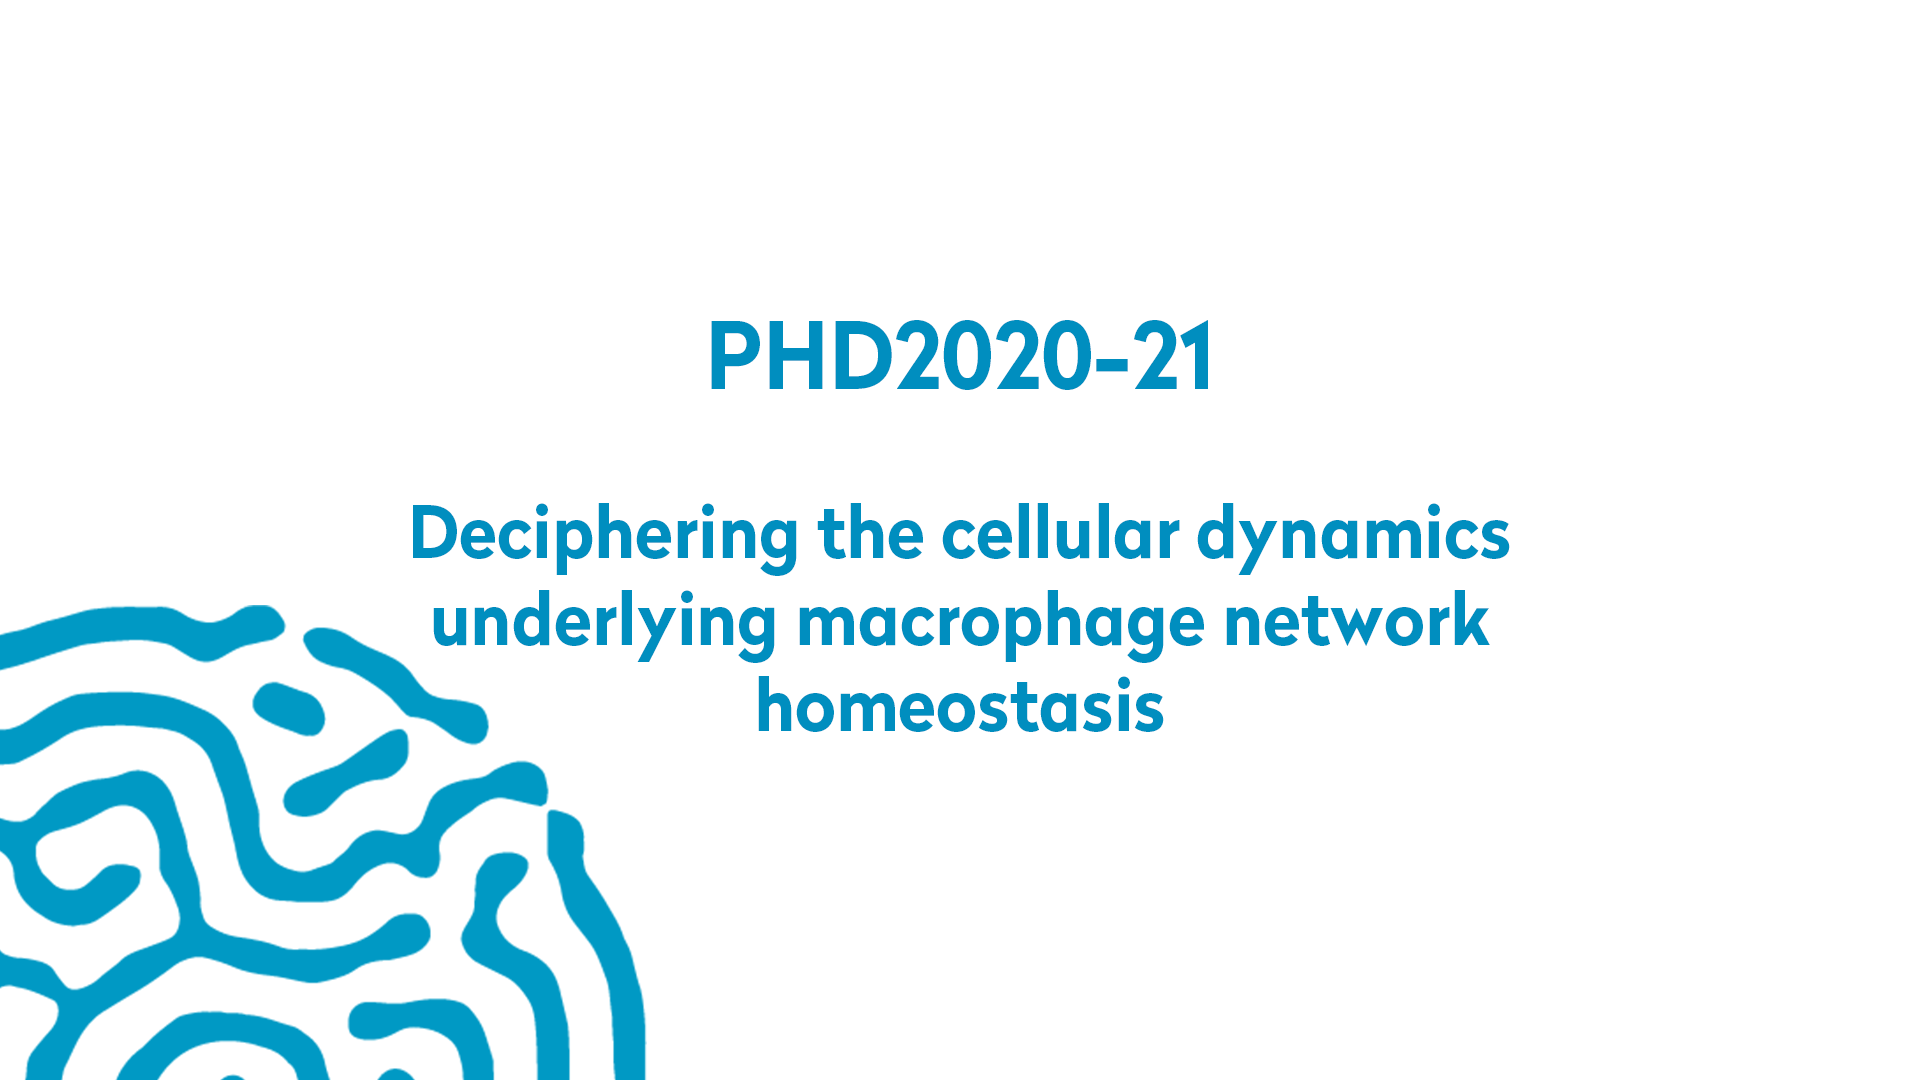 CENTURI Call PHD2020-21 | Deciphering the cellular dynamics underlying macrophage network homeostasis